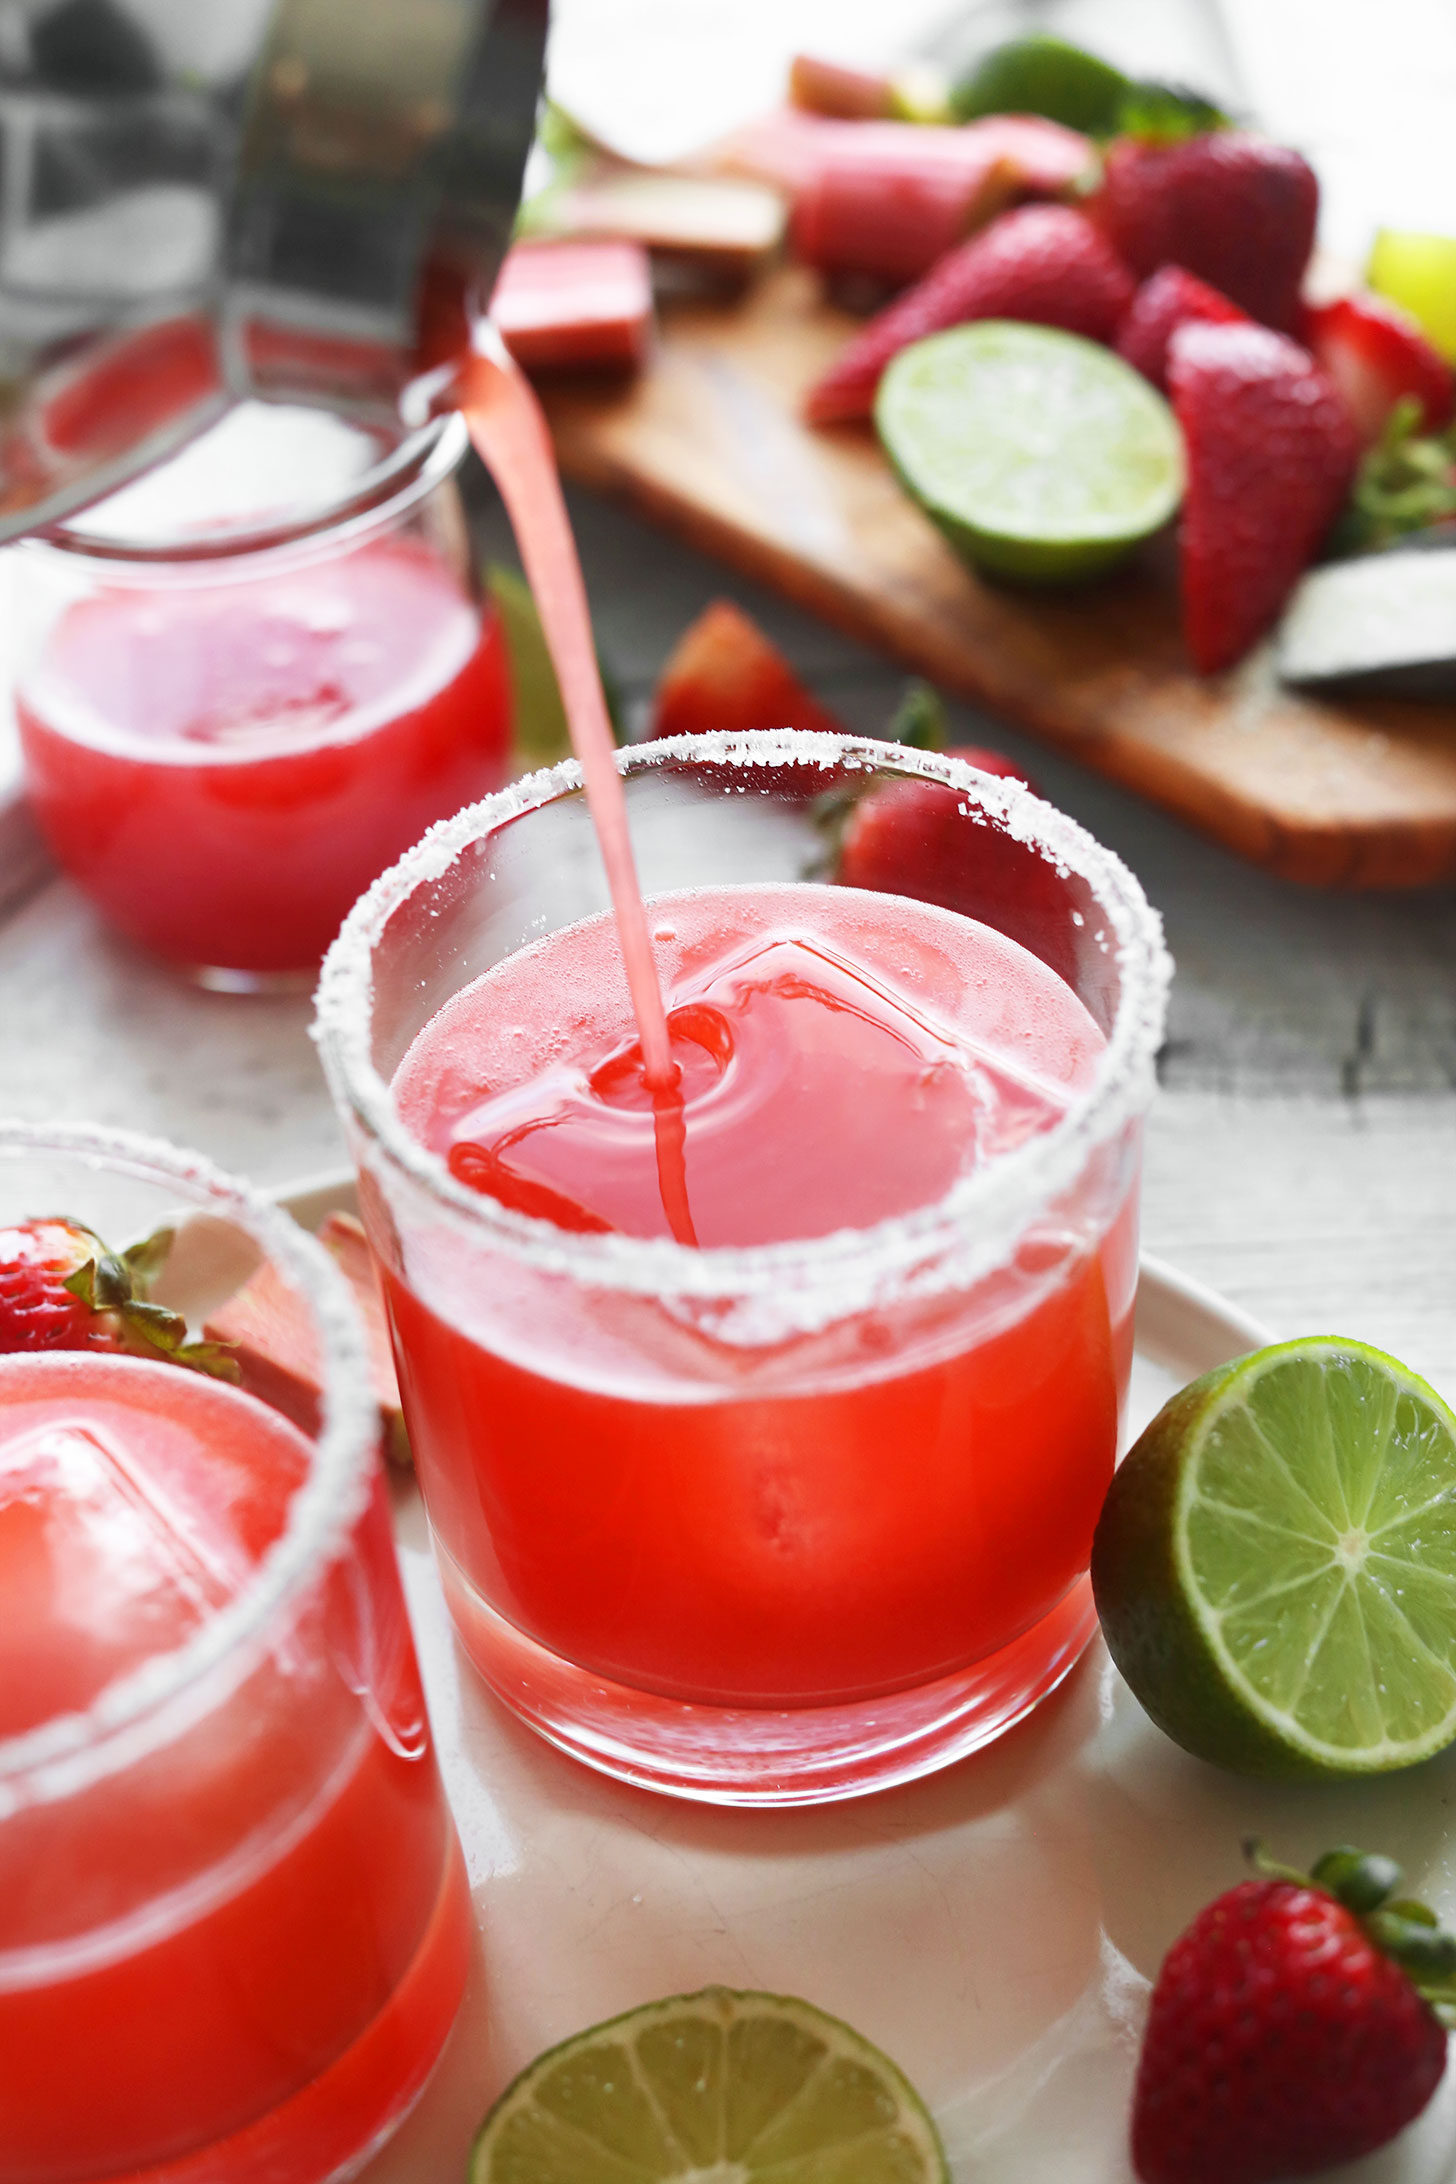 Pouring our gluten-free vegan Strawberry Rhubarb Margarita recipe into a glass